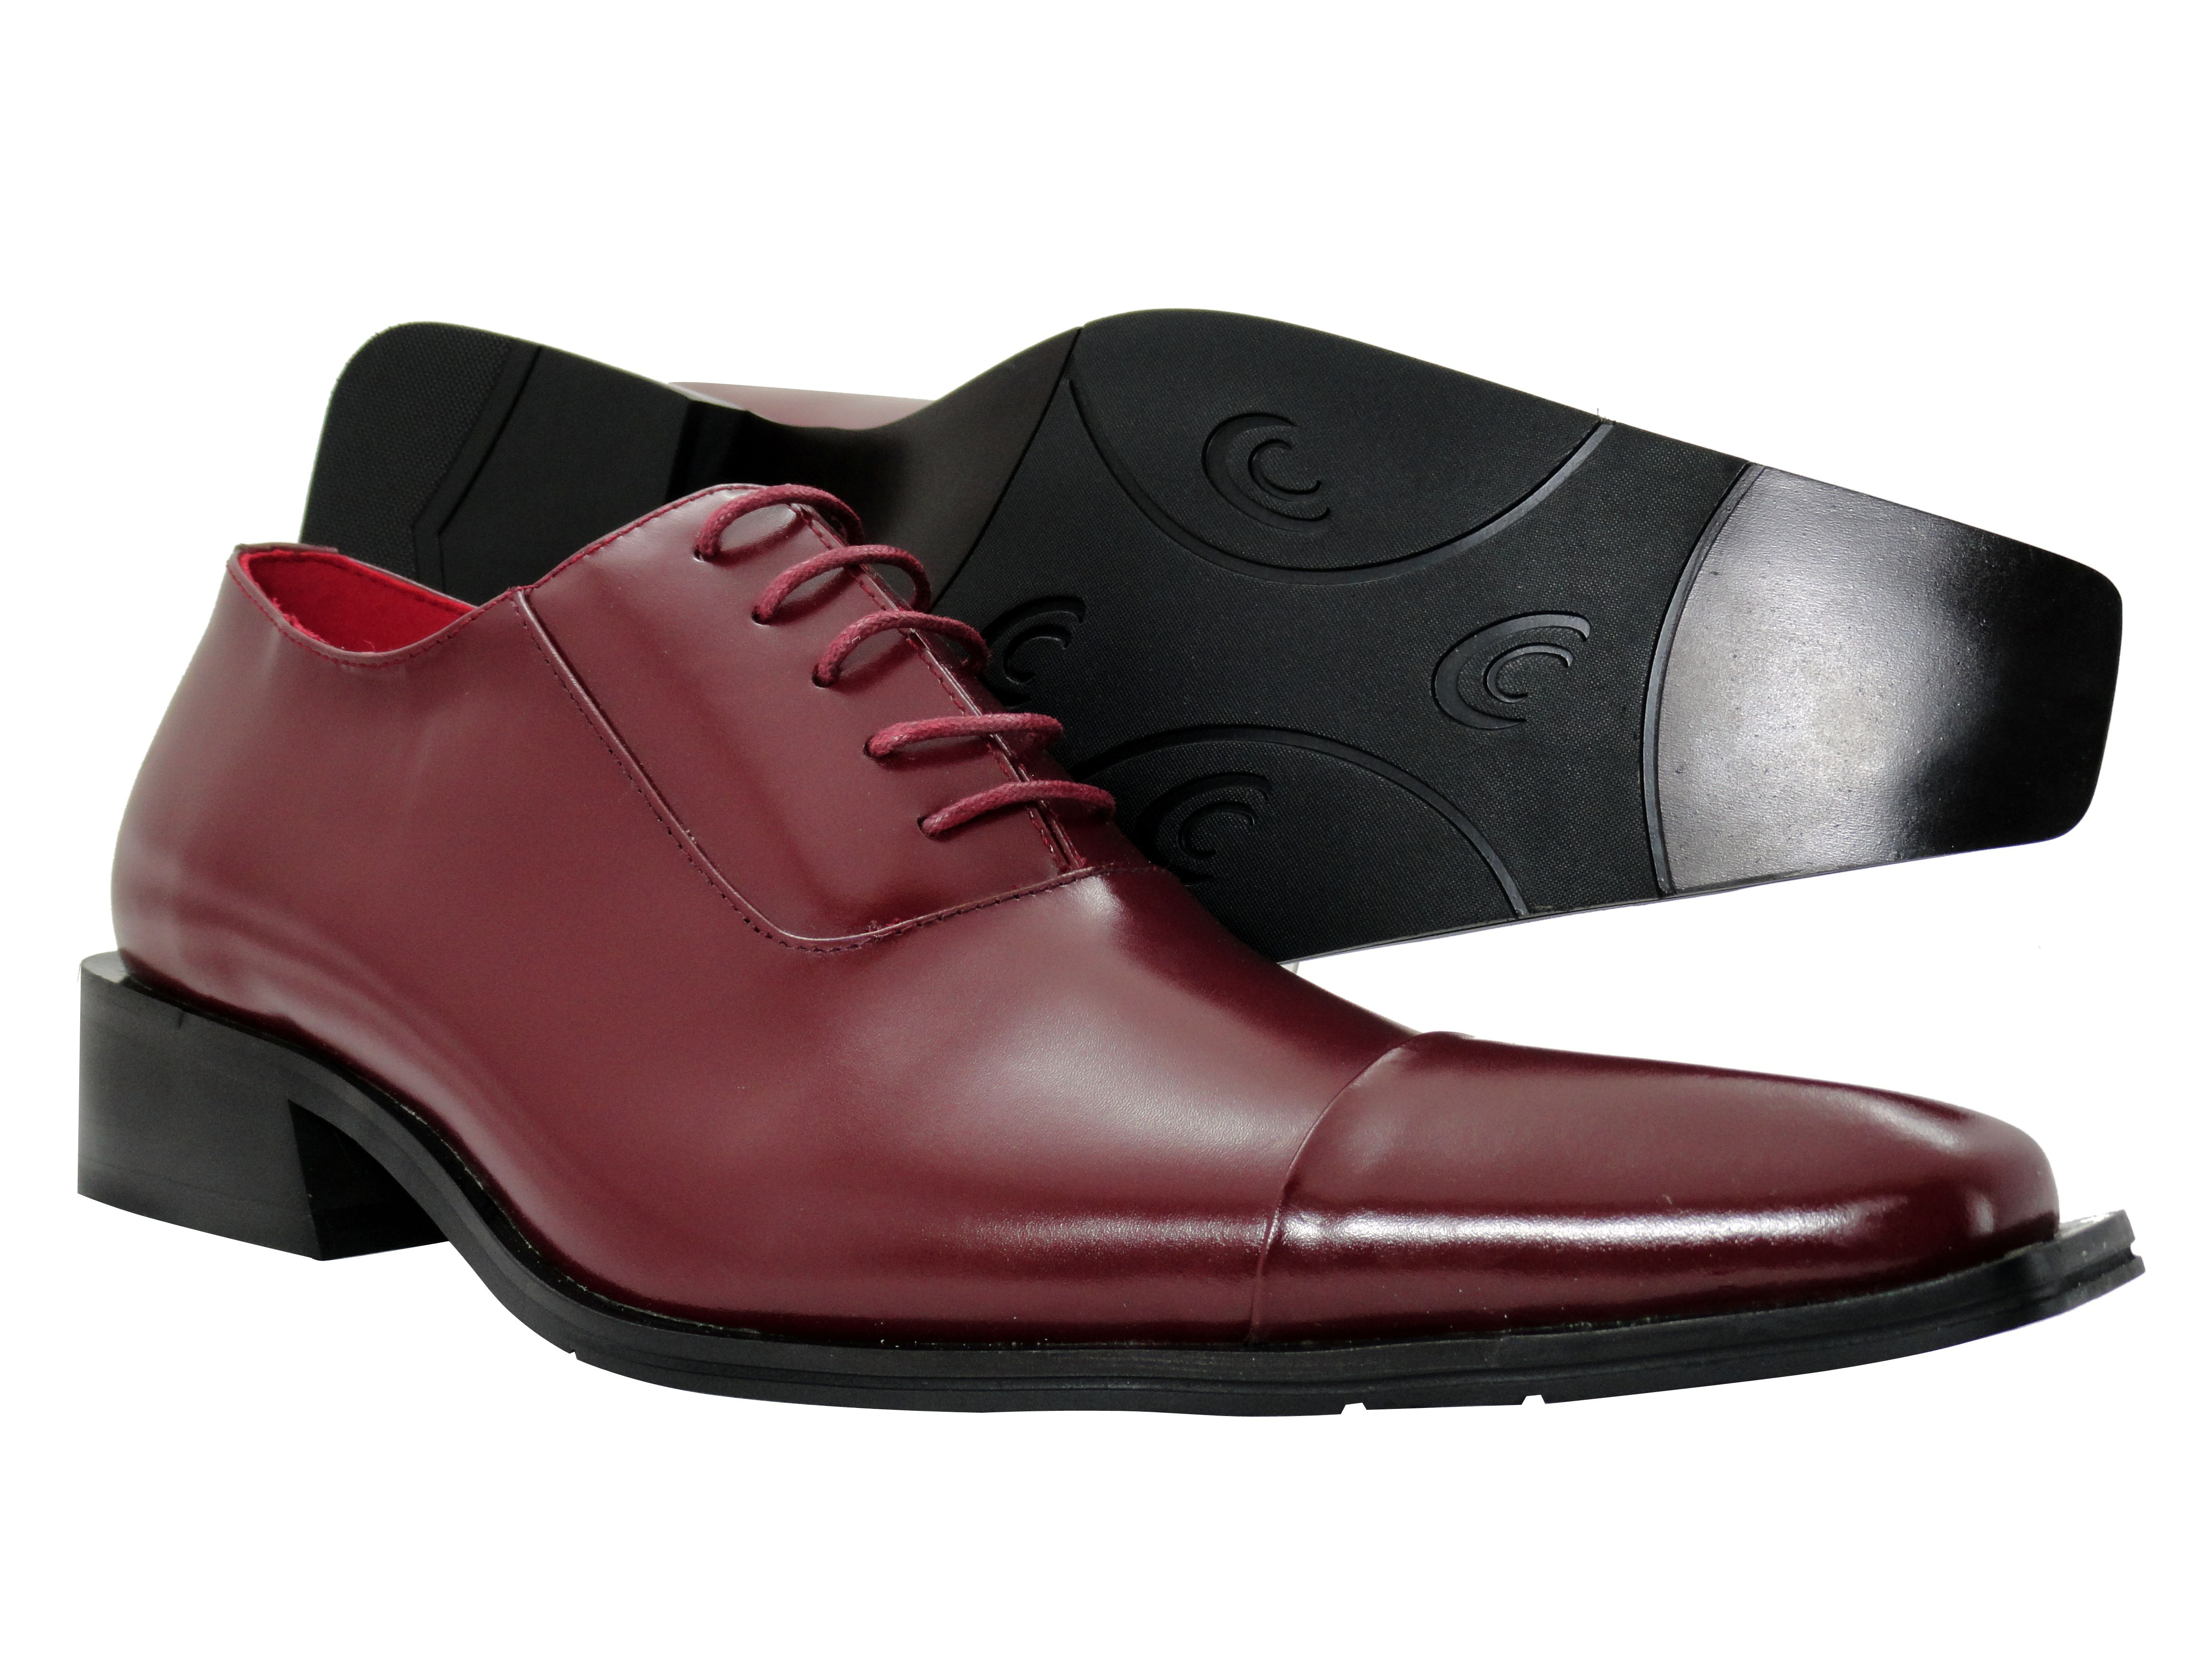 mens dress shoes zota burgundy wine oxford lace up leather